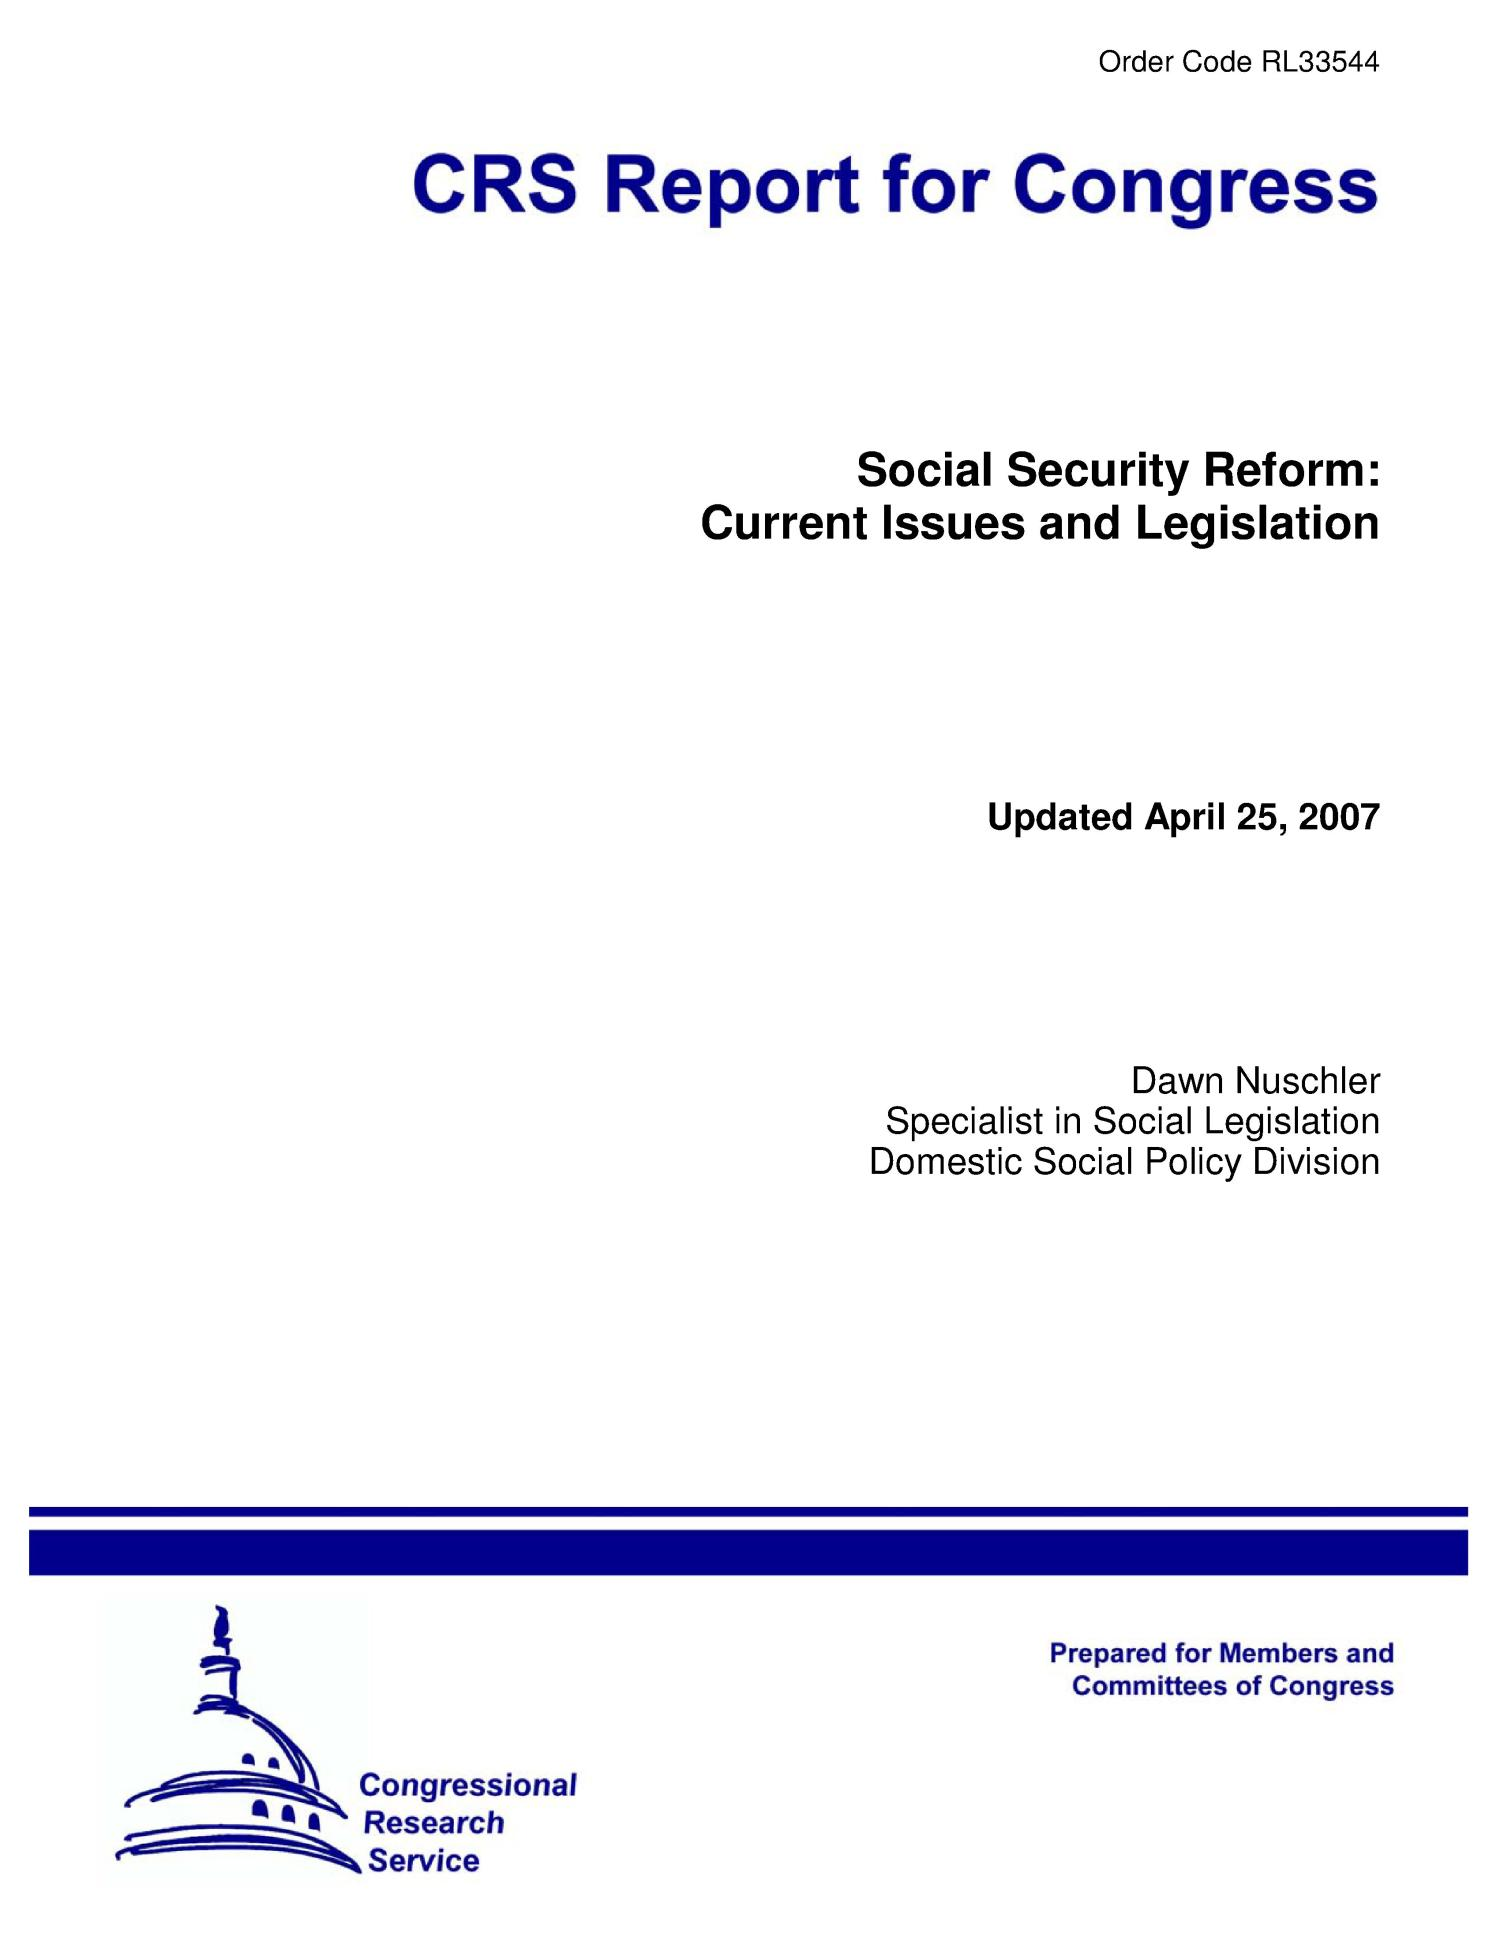 Social Security Reform: Current Issues and Legislation                                                                                                      [Sequence #]: 1 of 27